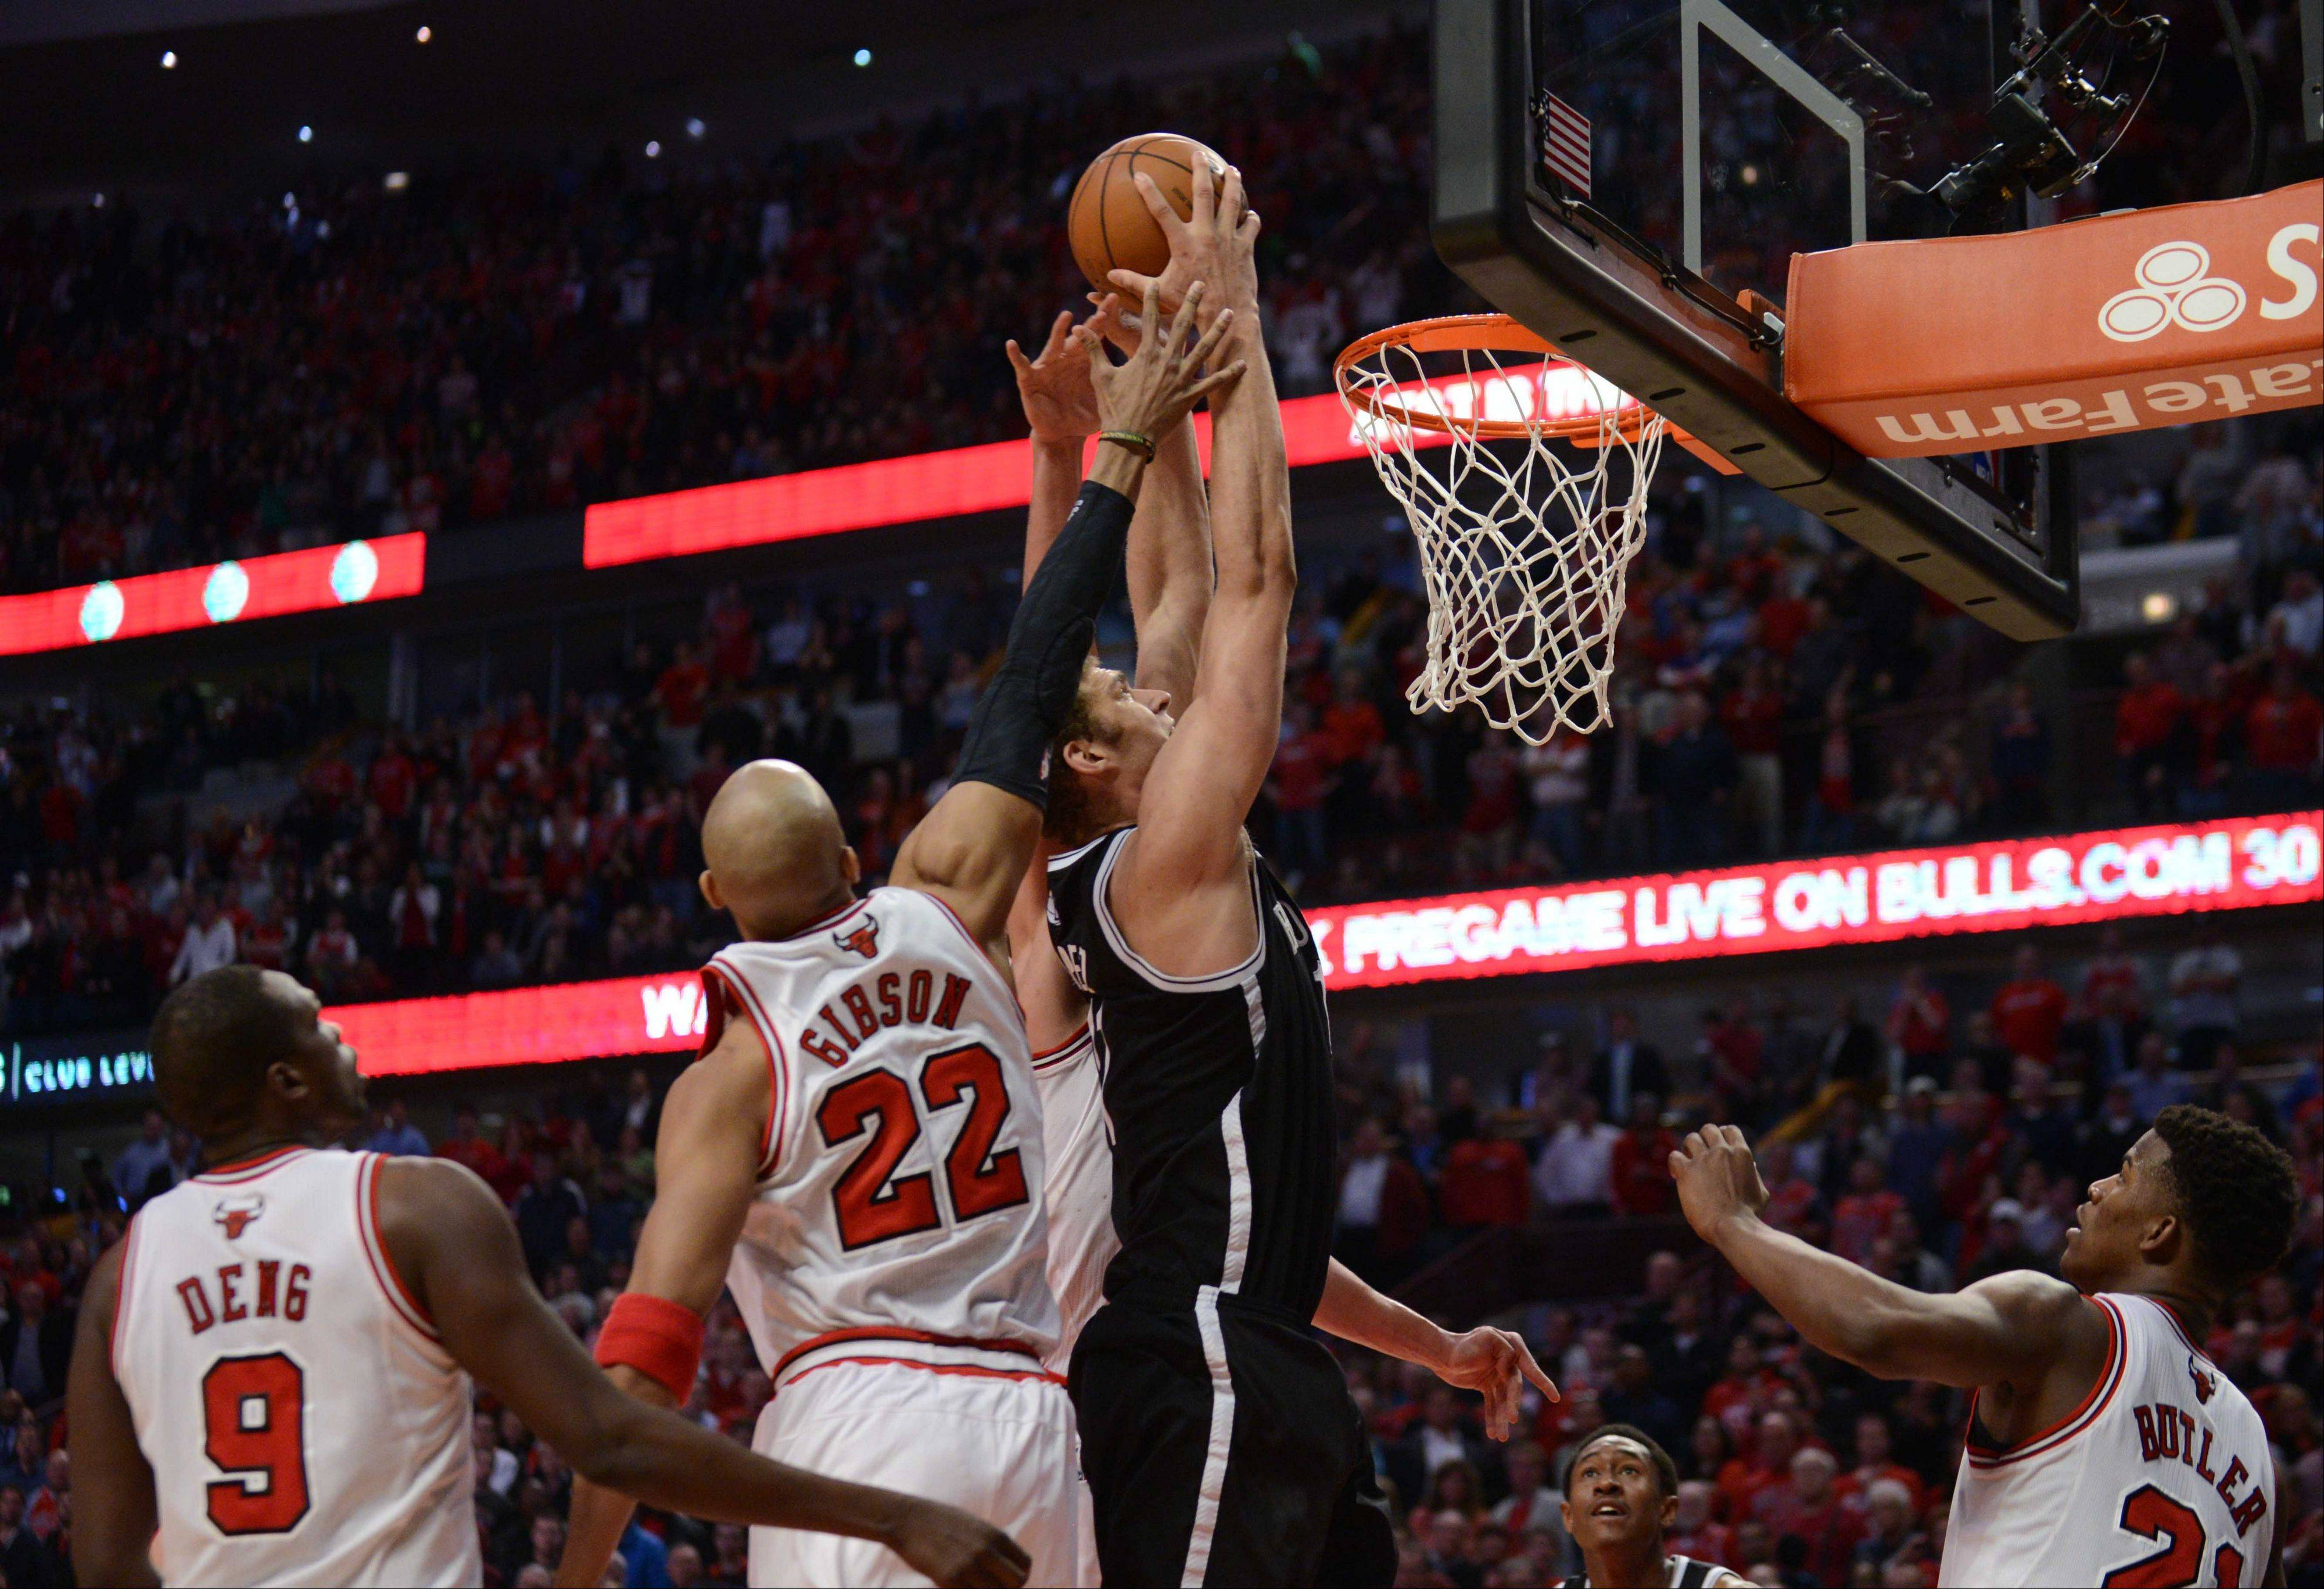 Game 3 of the NBA Eastern Conference first-round playoffs between the Chicago Bulls and Brooklyn Nets at 7 p.m. Thursday at the United Center, Chicago.